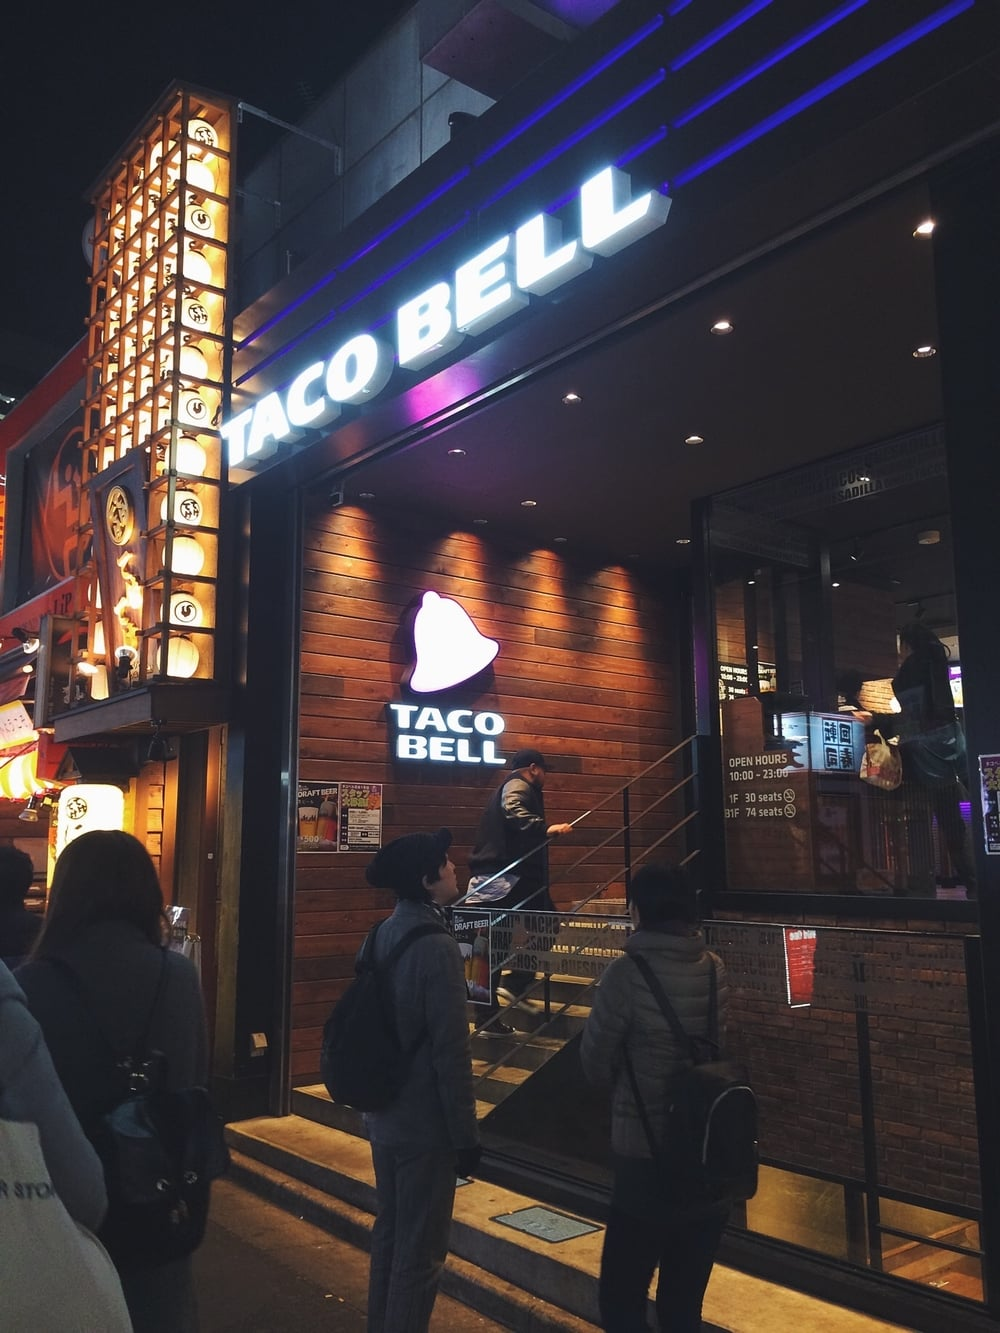 We found Taco Bell! Their menus was slightly different. They served beers and stuff with shrimp.